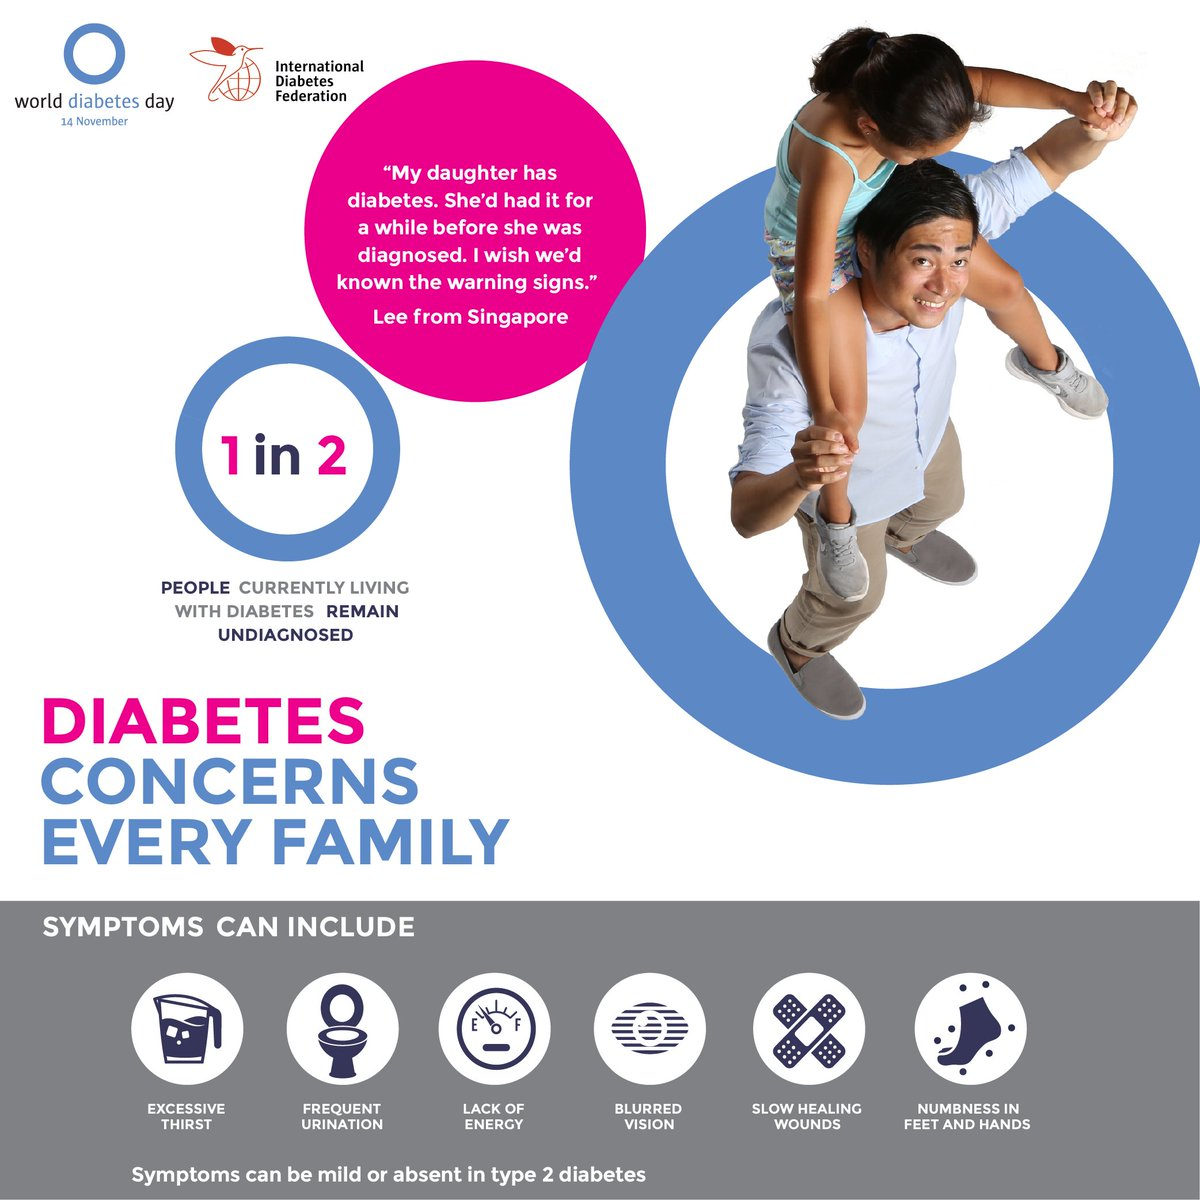 test Twitter Media - All families should work together this November to help raise awareness of the #diabetes warning signs. Early diagnosis and treatment is key for a healthy life with diabetes. https://t.co/3W0c81U1Bs #familyanddiabetes #WDD2018 https://t.co/ZsO3zmmjlR